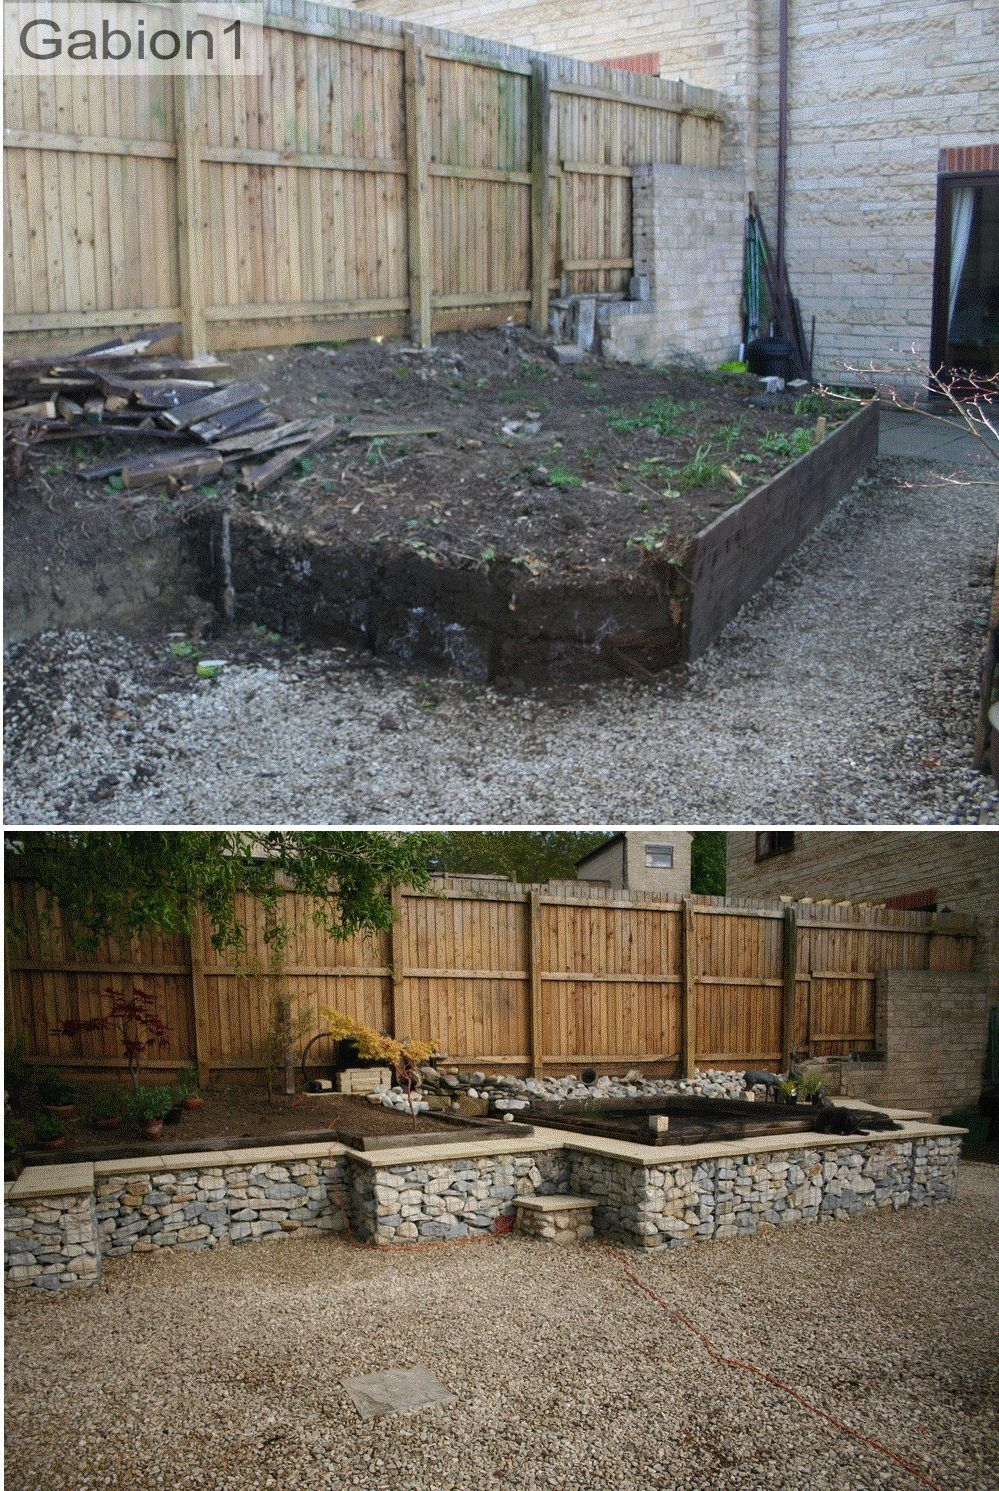 gabion wall before and after shot in stonehouse gloucestershire